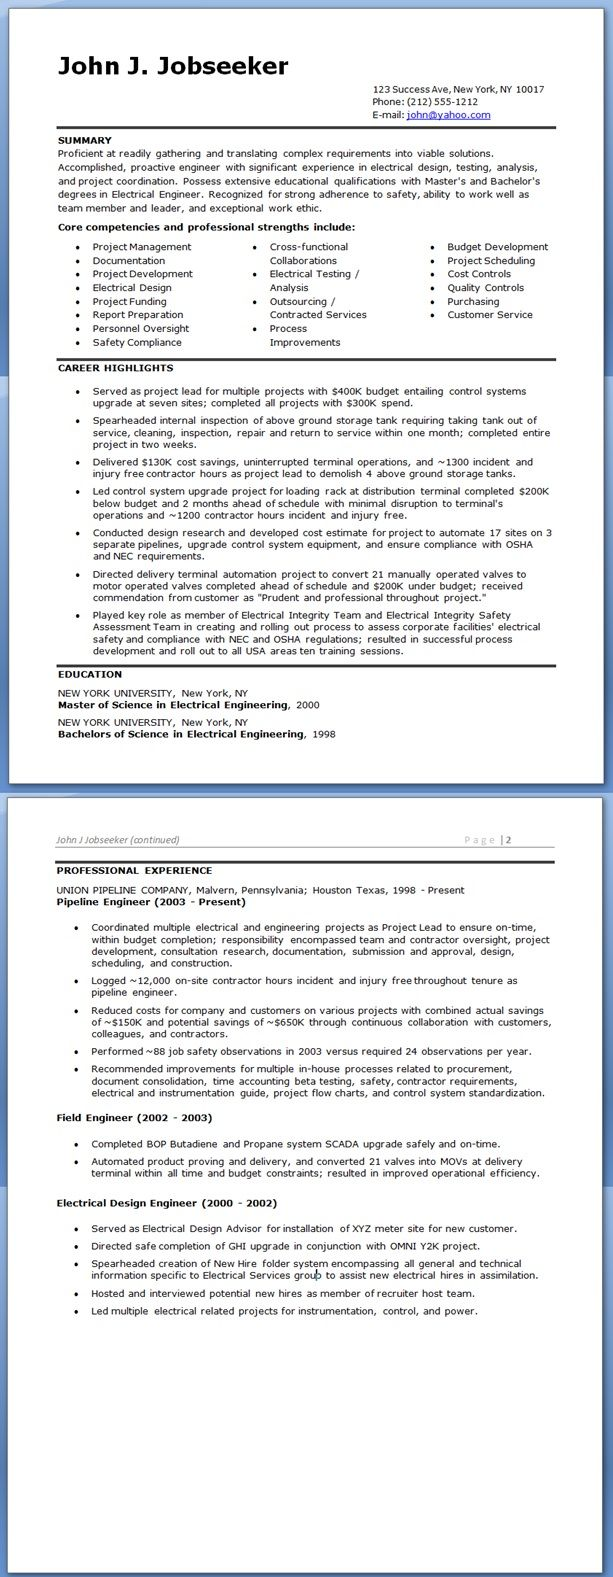 electrical engineer resume sample doc experienced - Resume Sample For Electrical Engineer